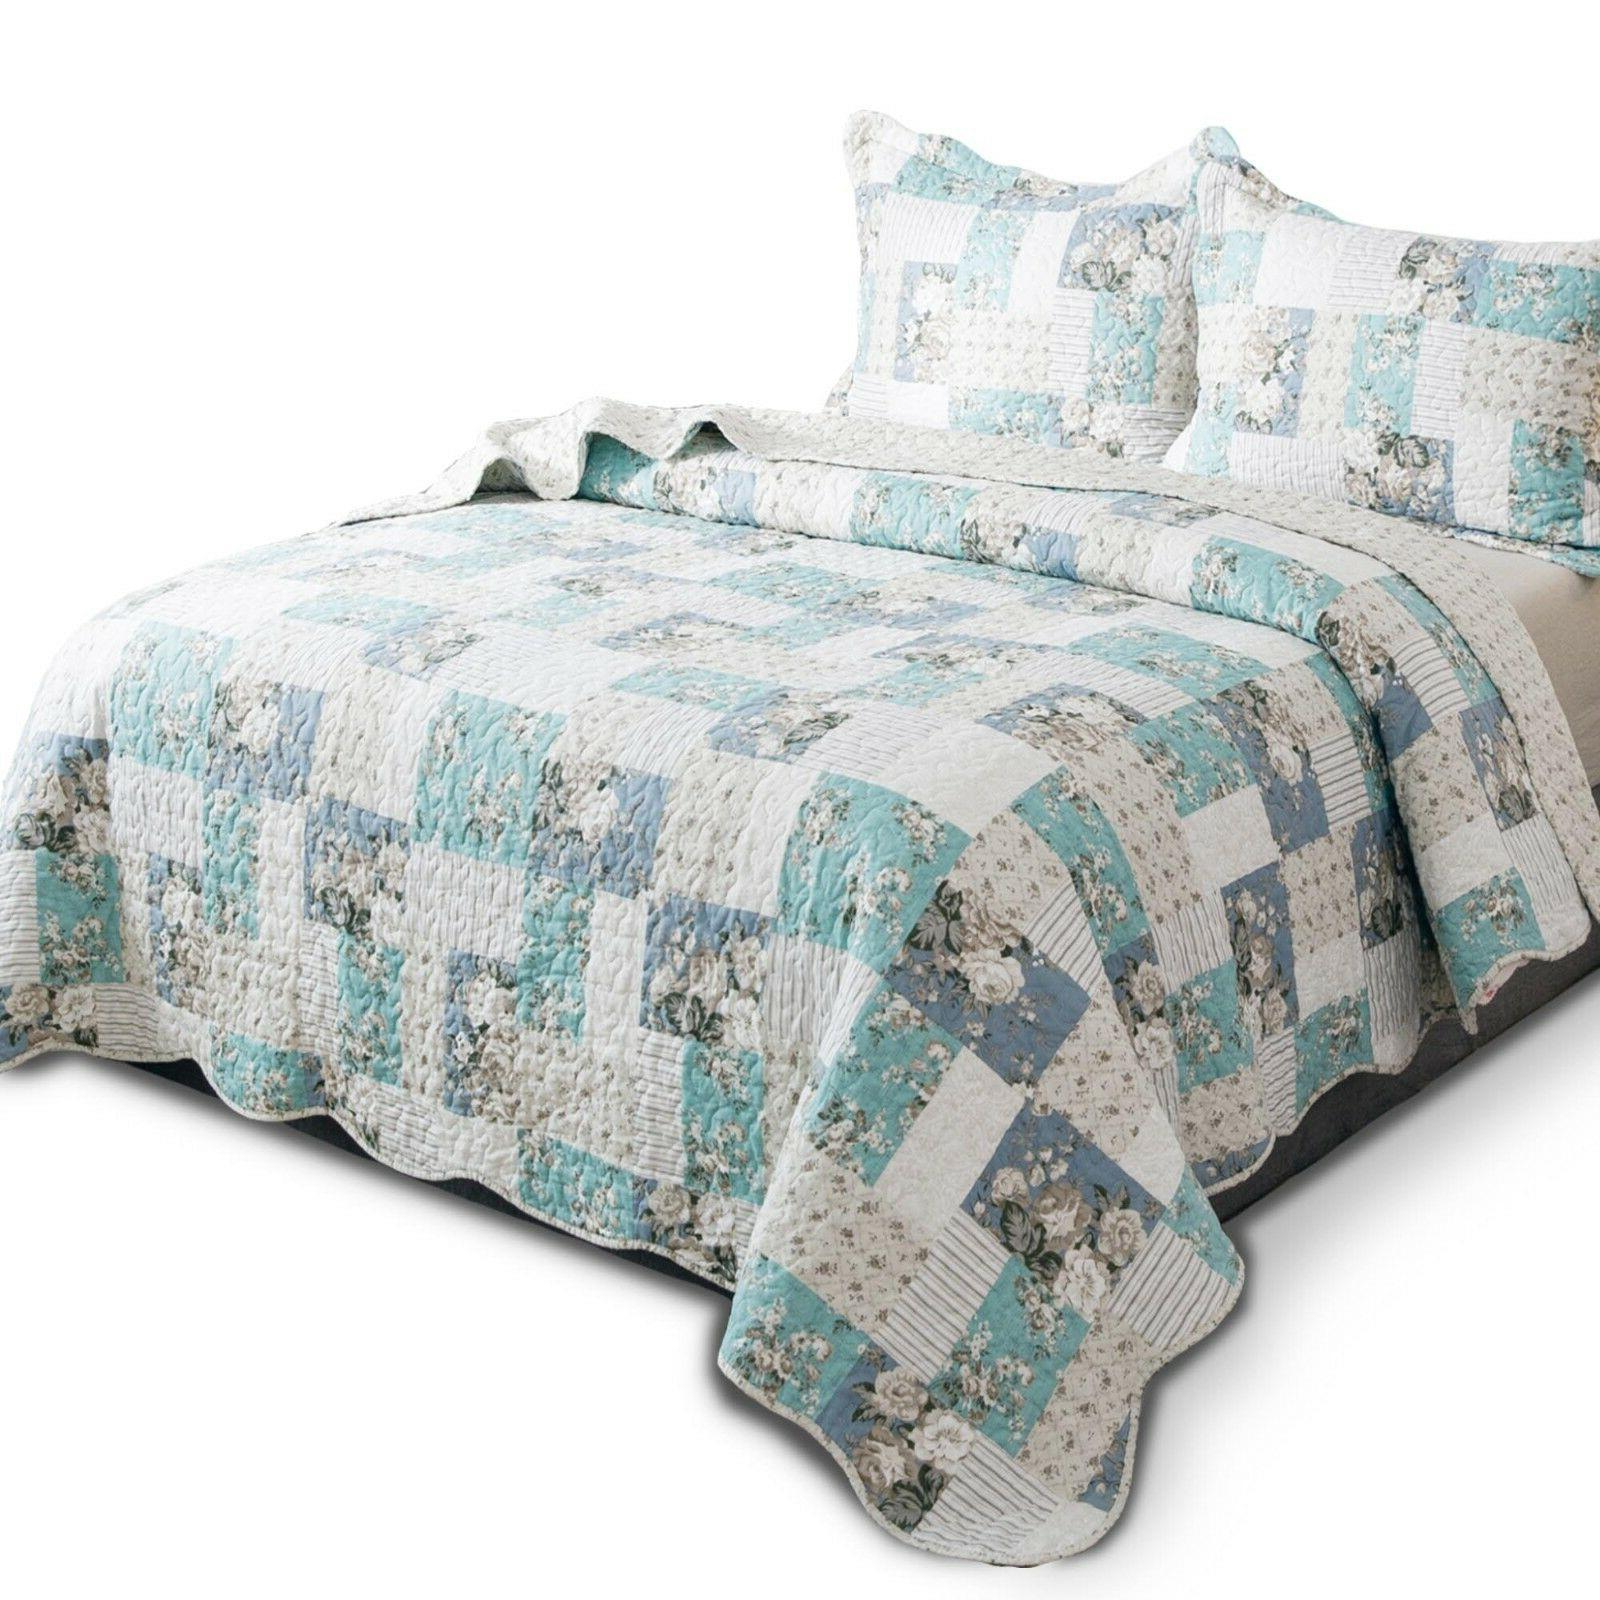 Country Printed Patchwork Printed Bedding Coverlet